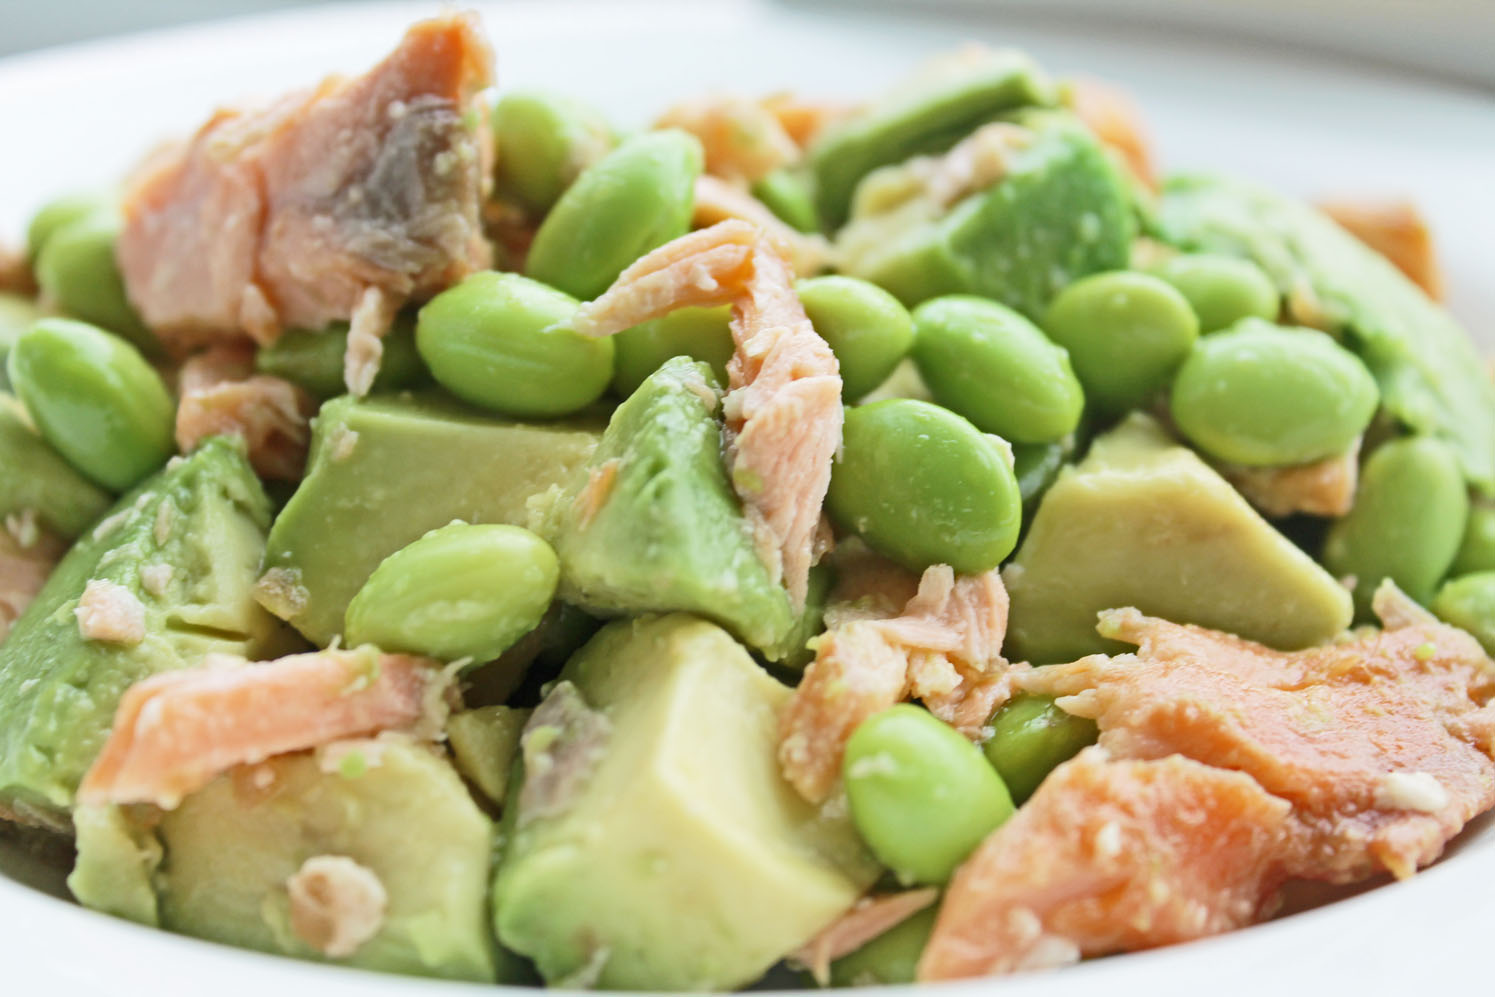 healthy dinner option for clean eating diet salmon avocado edamame